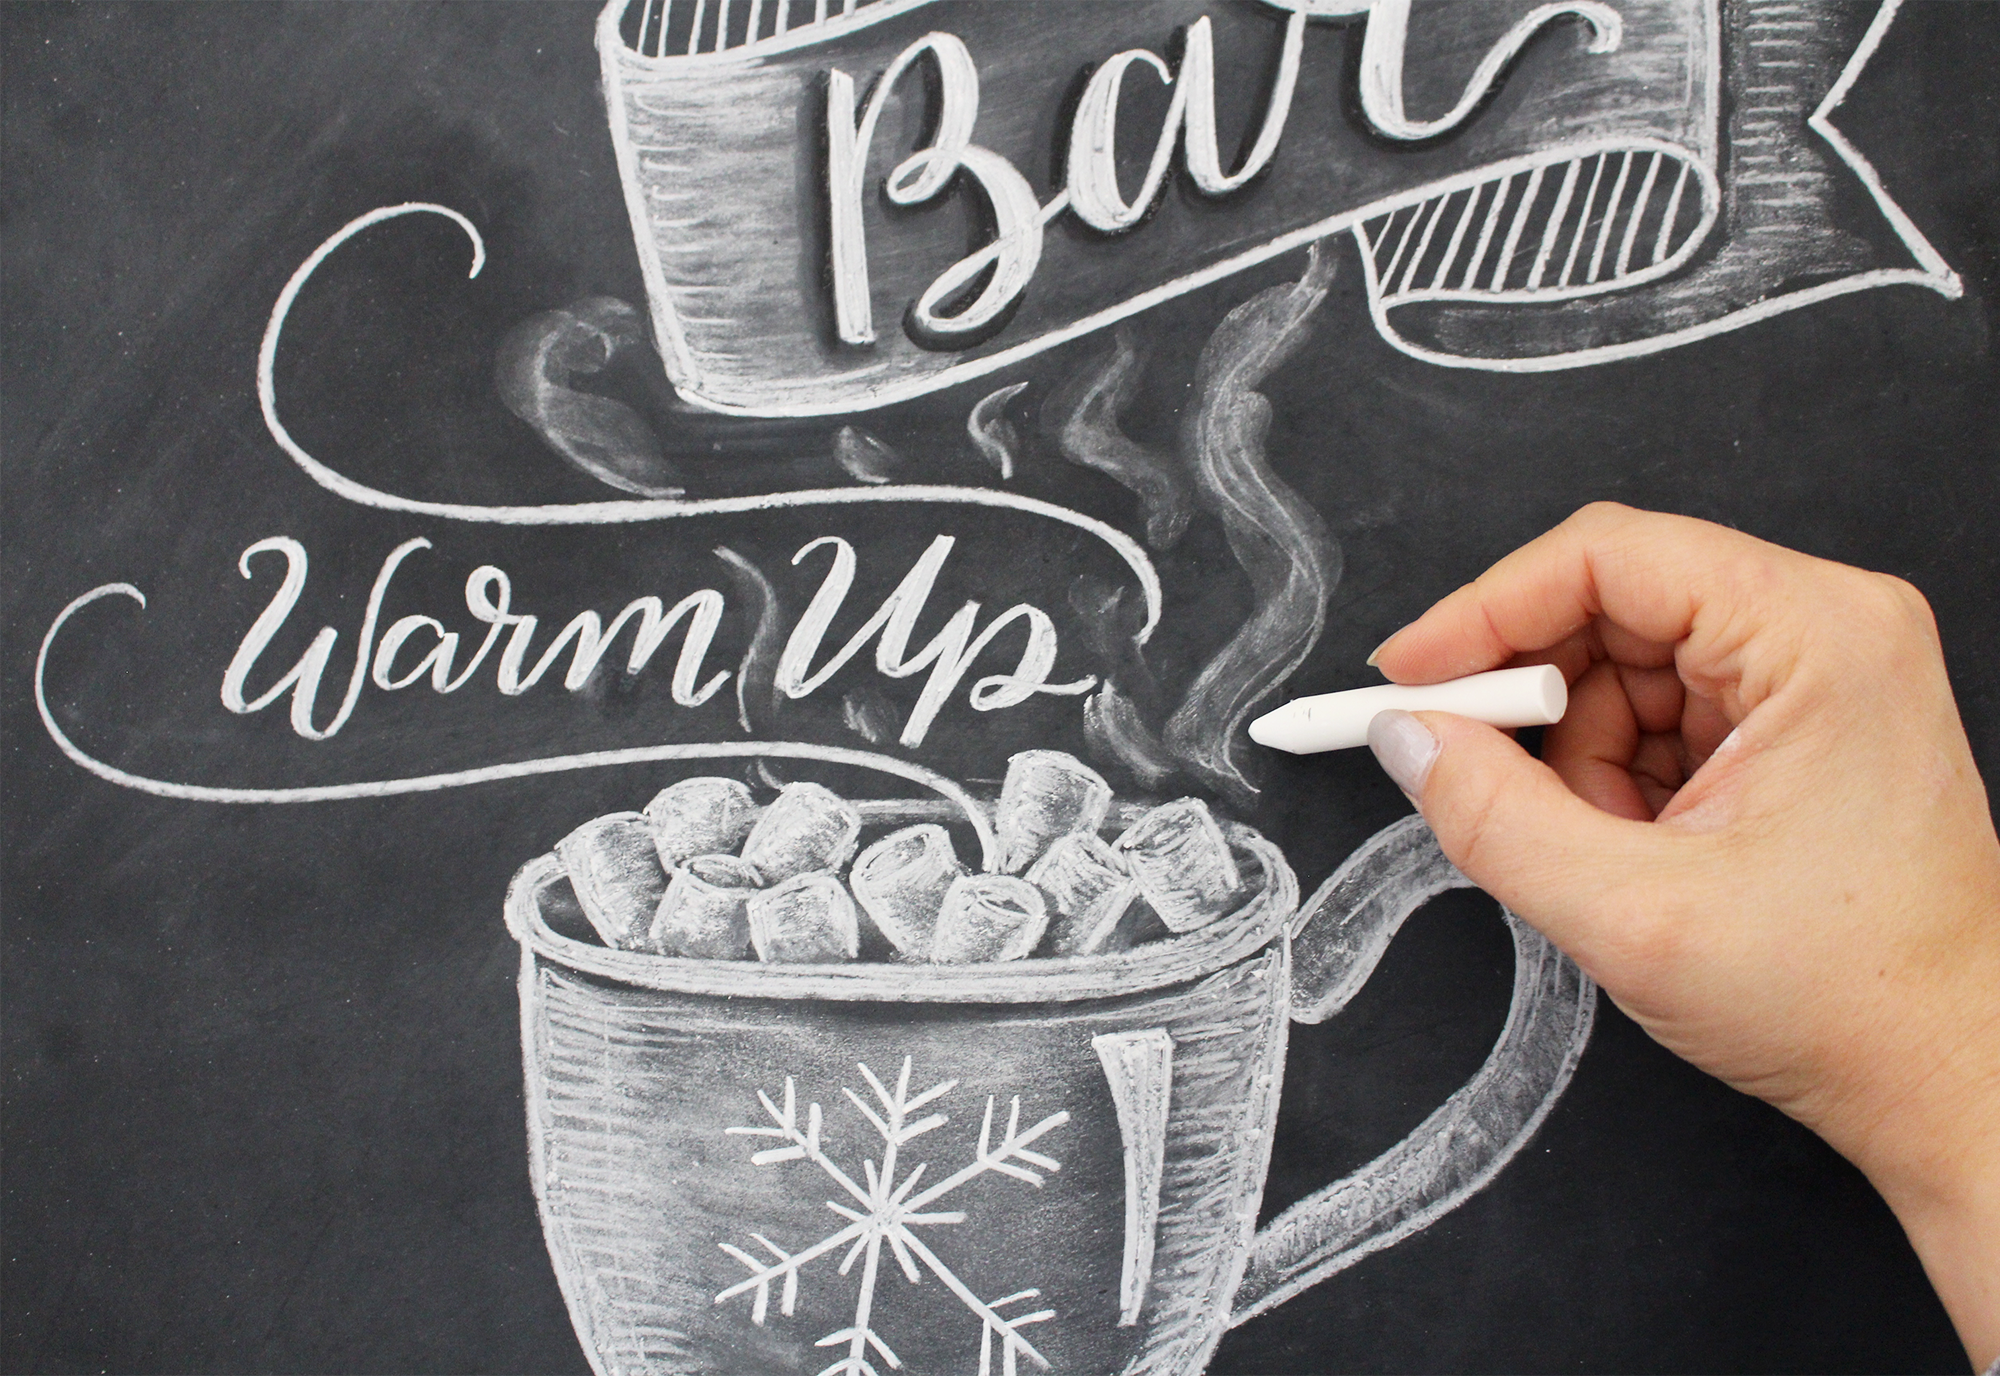 Learn how to draw a hot cocoa bar chalkboard sign by Valerie McKeehan